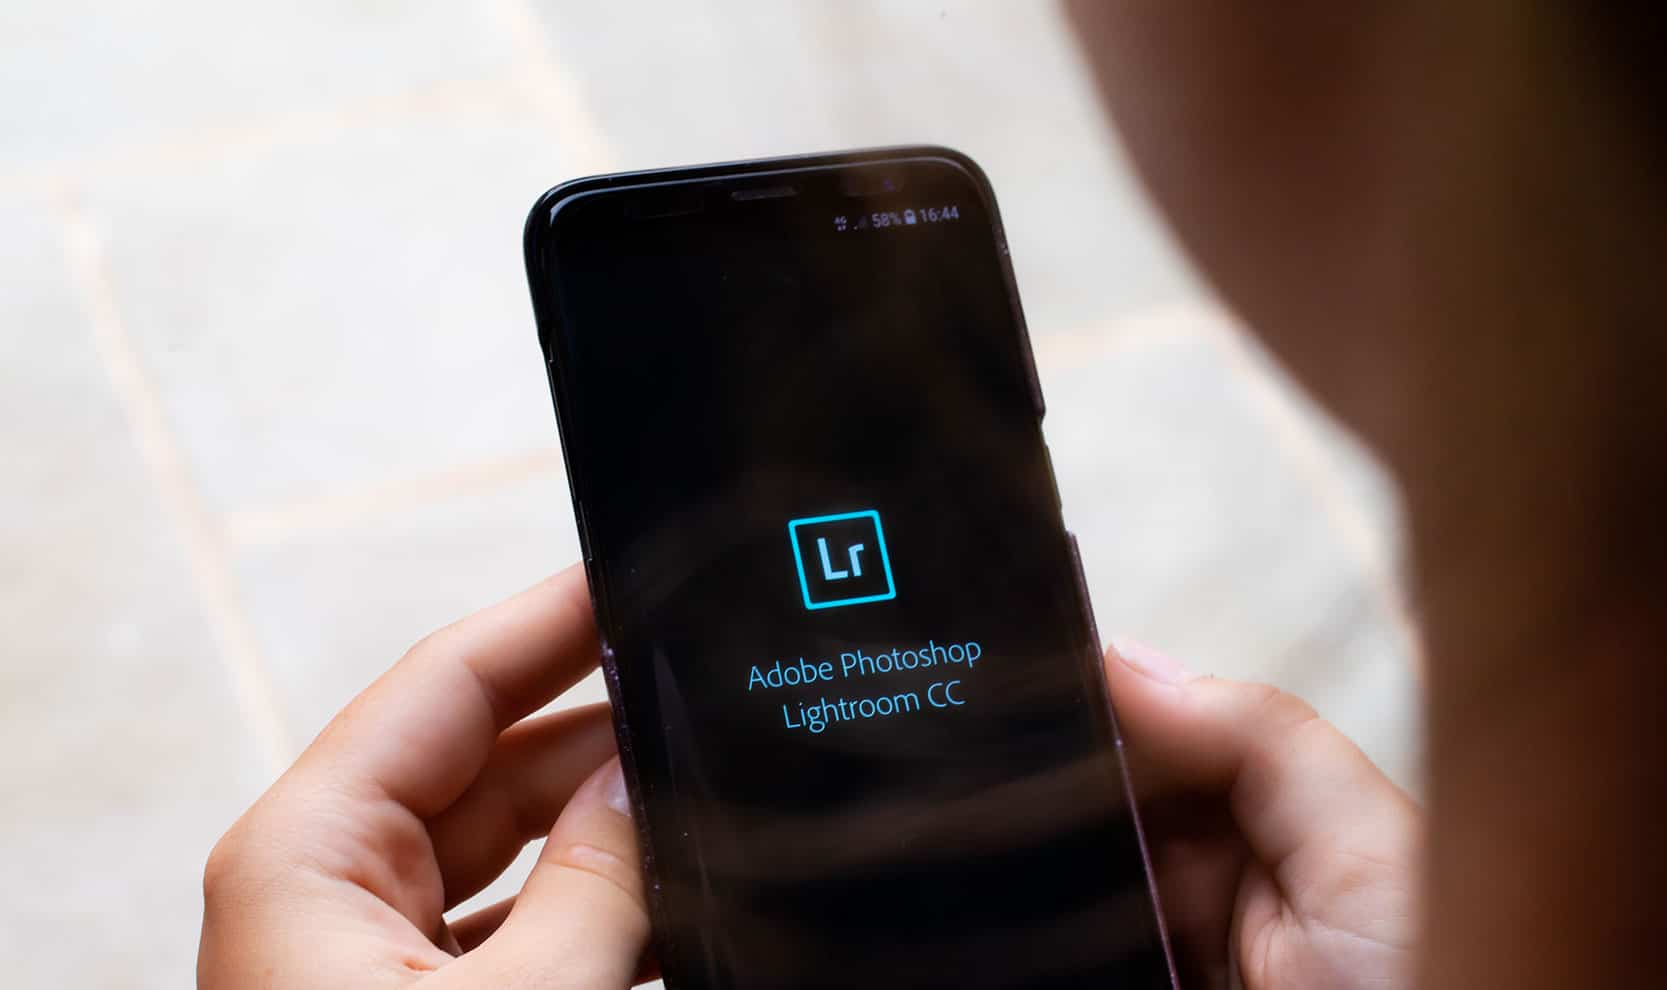 Lightroom CC load screen, a user opening Lightroom app on a smartphone.